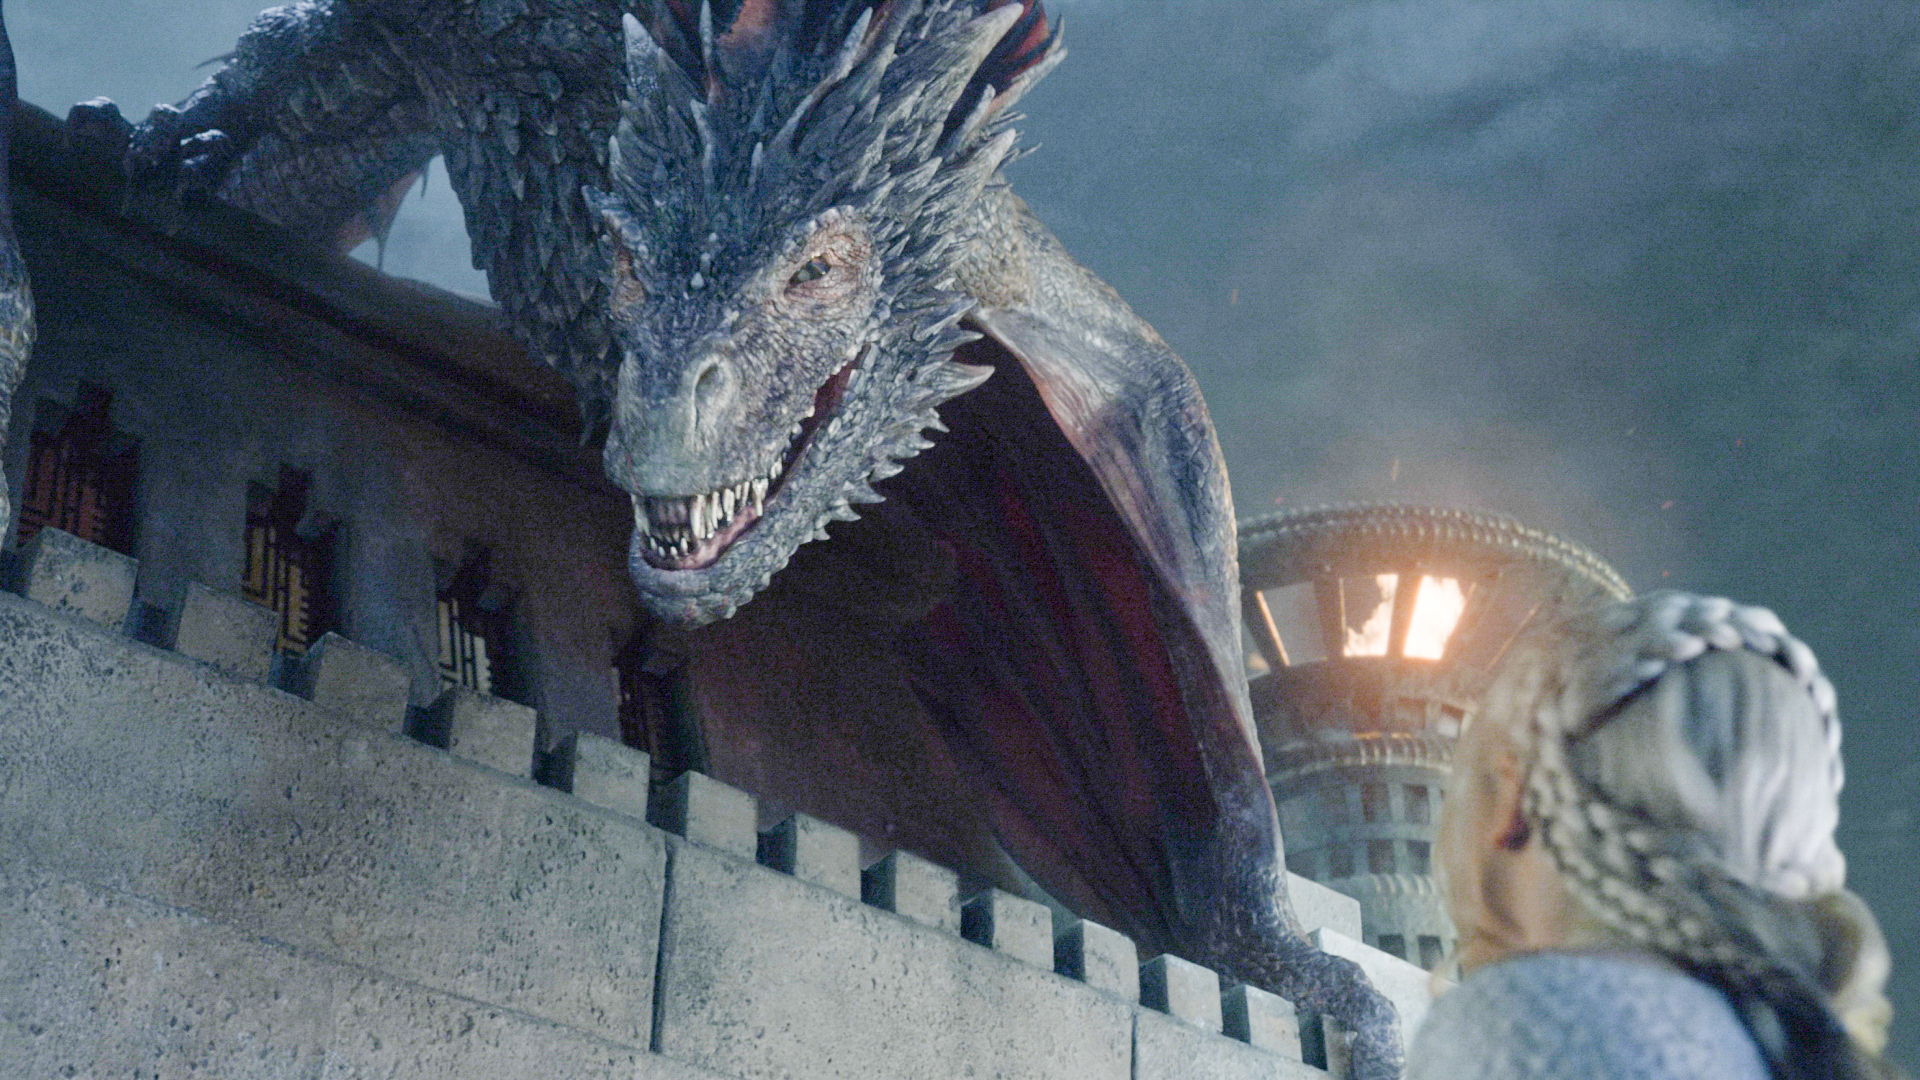 Game of Thrones, dragons